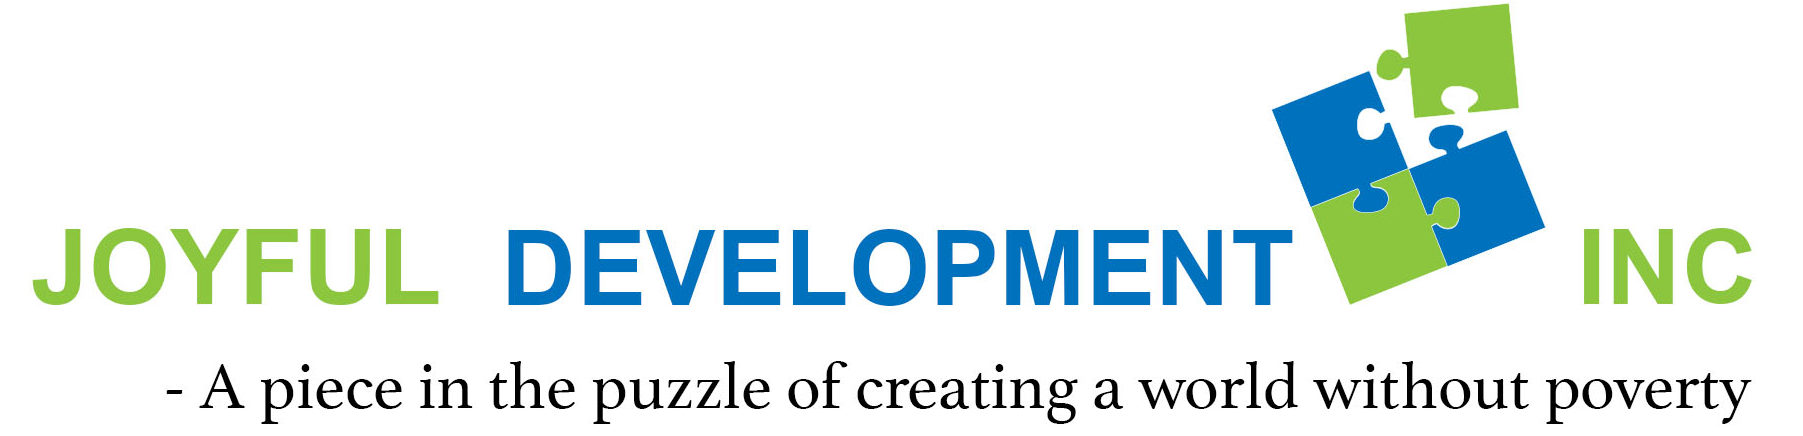 Joyful Development Inc.